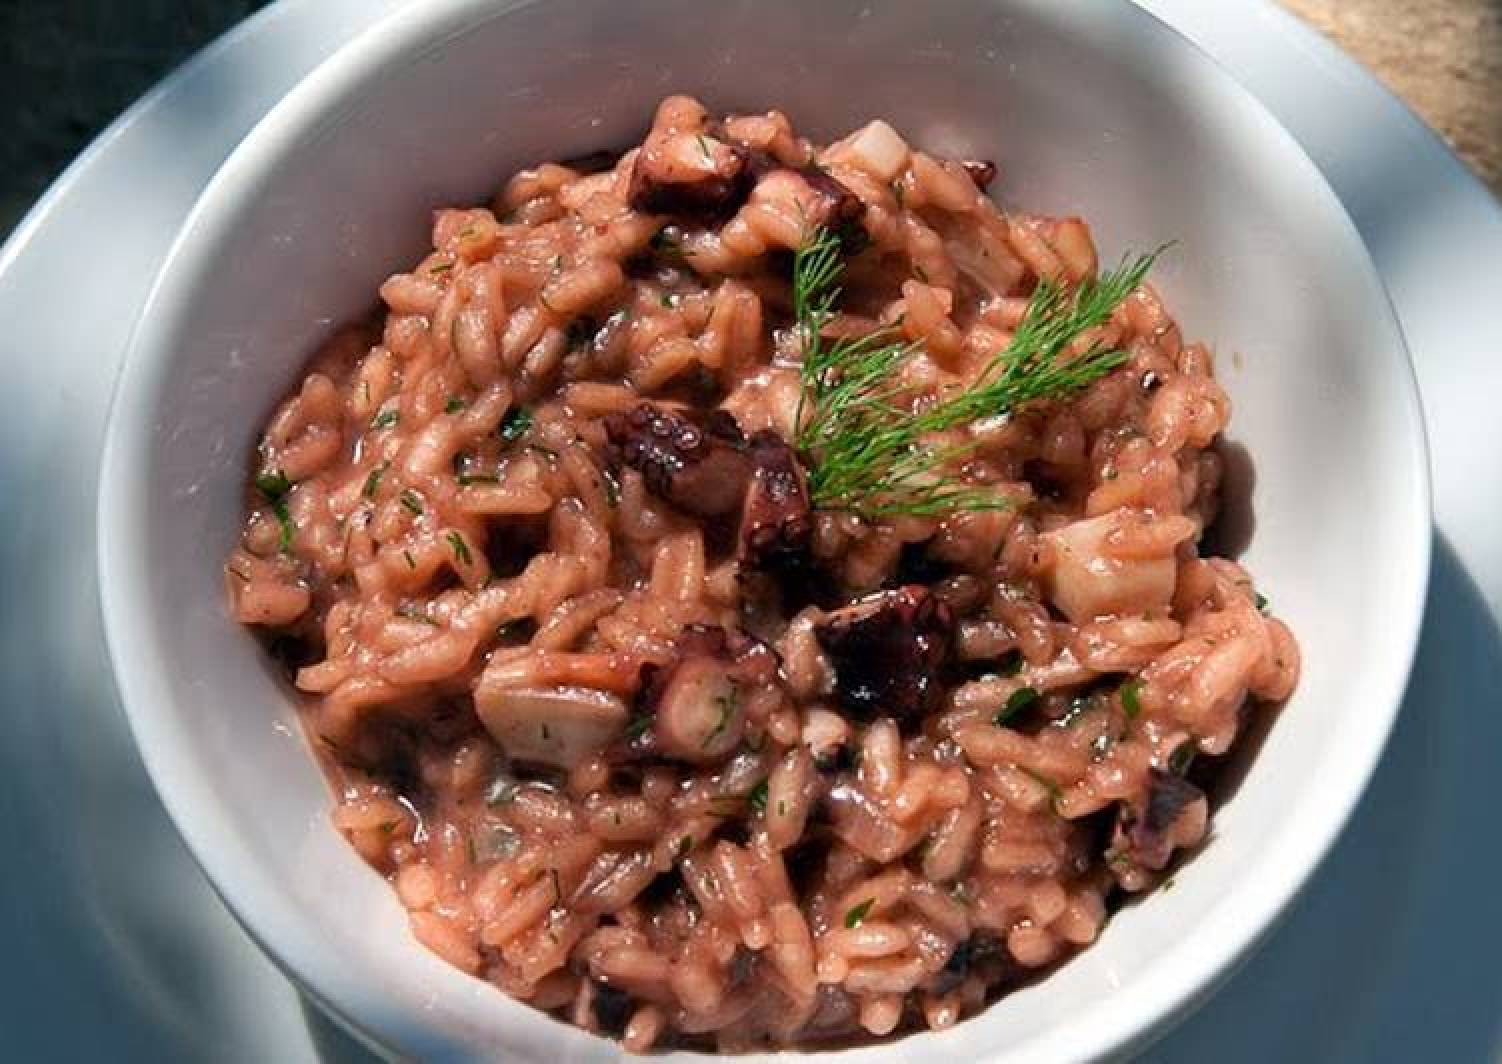 pulpo arroz (octopus rice)